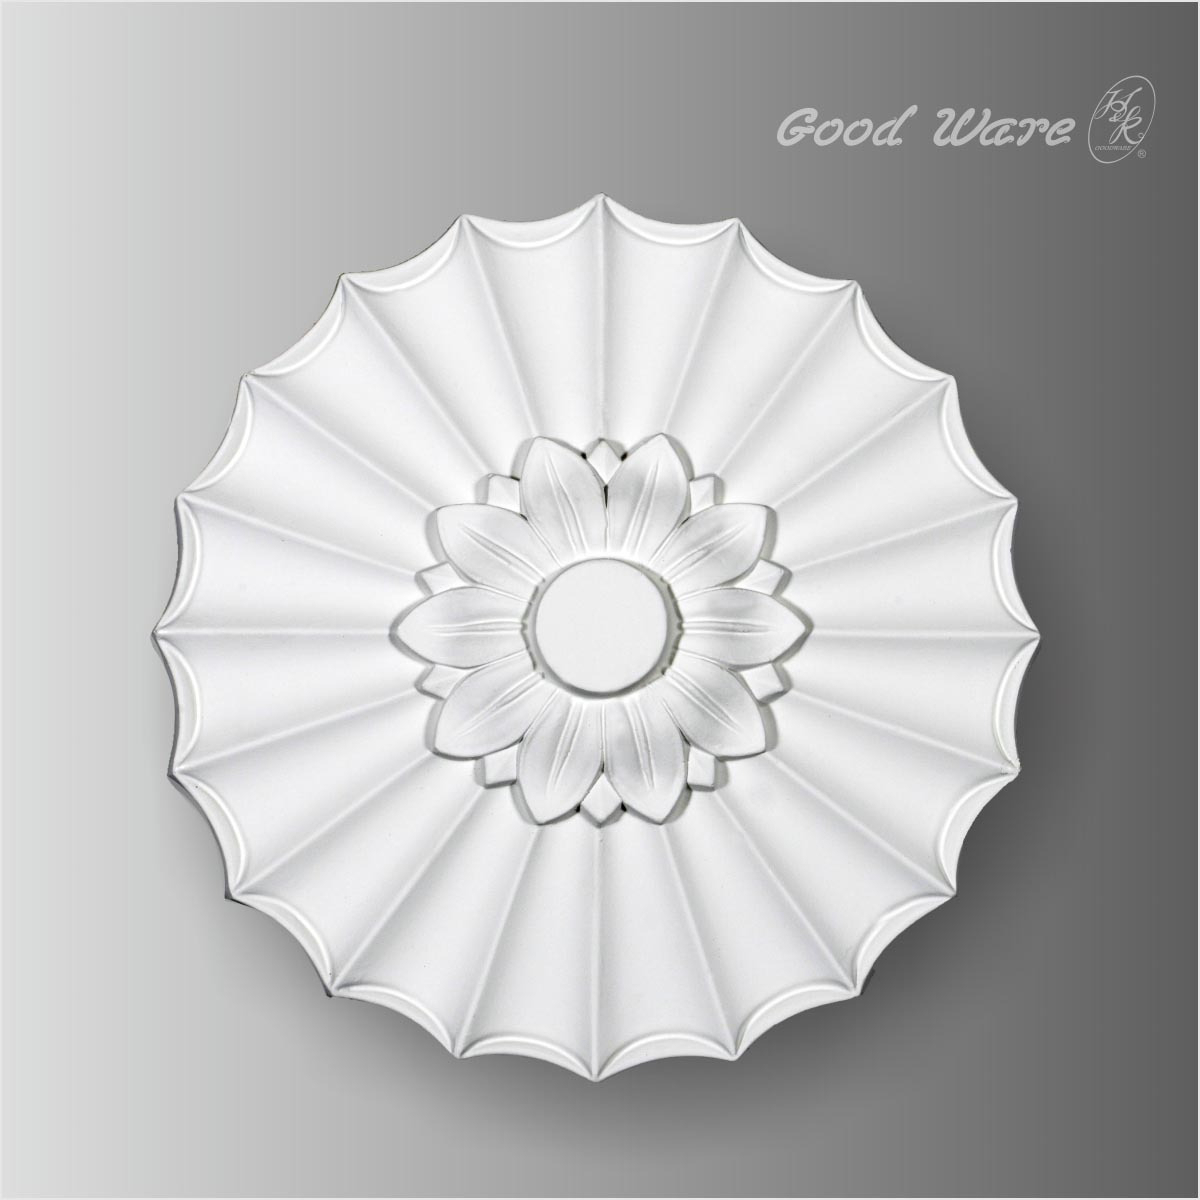 Small Medallion Wall Decor For Well Liked Small Polyurethane Ceiling Medallion Wall Decor European, Ceiling (View 12 of 20)